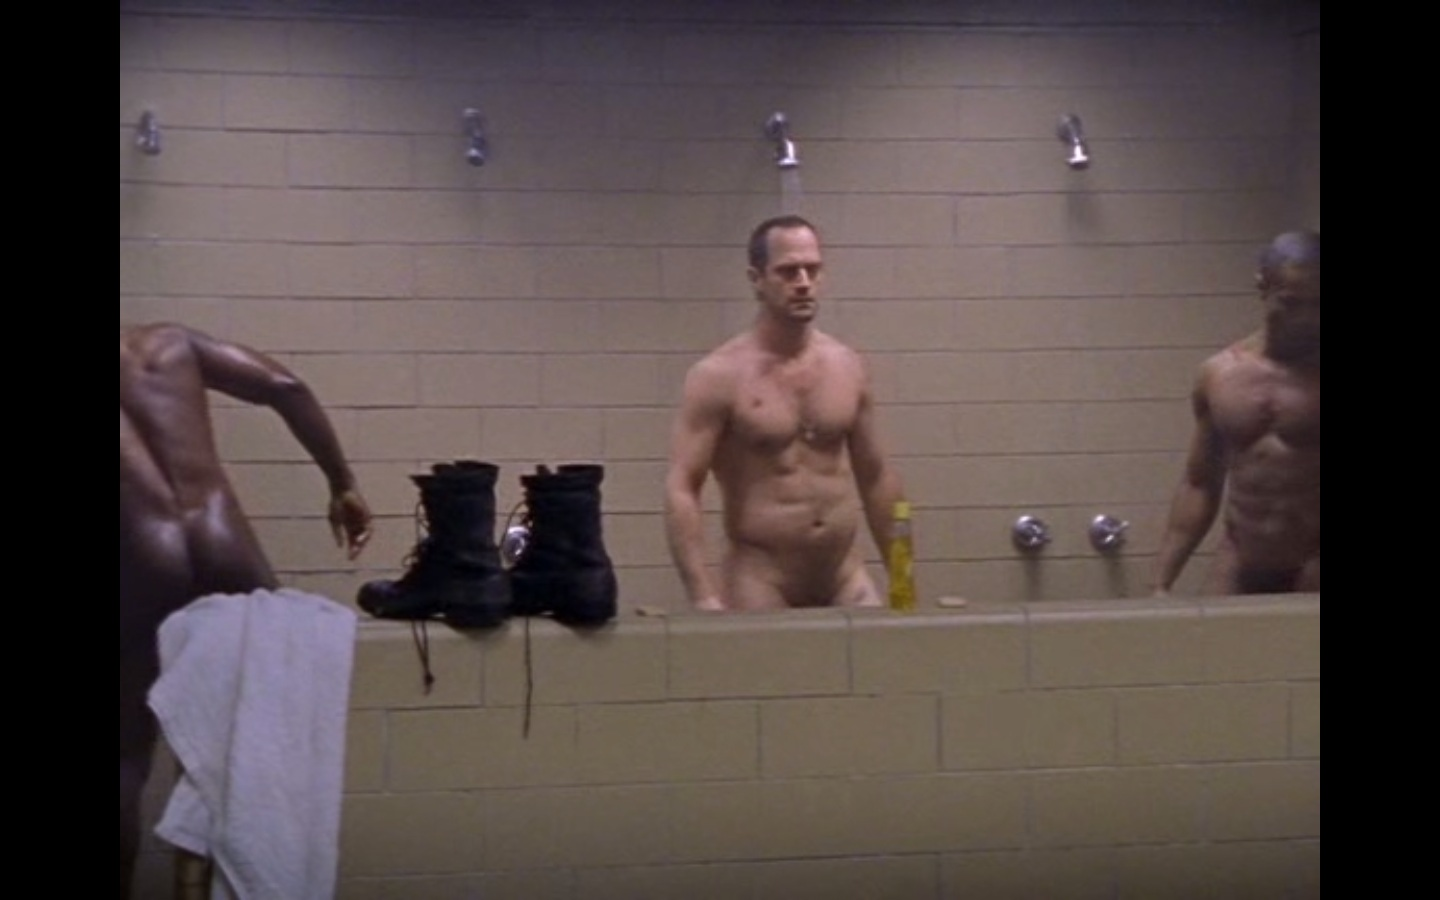 Something is. Christopher meloni naked pics for sale